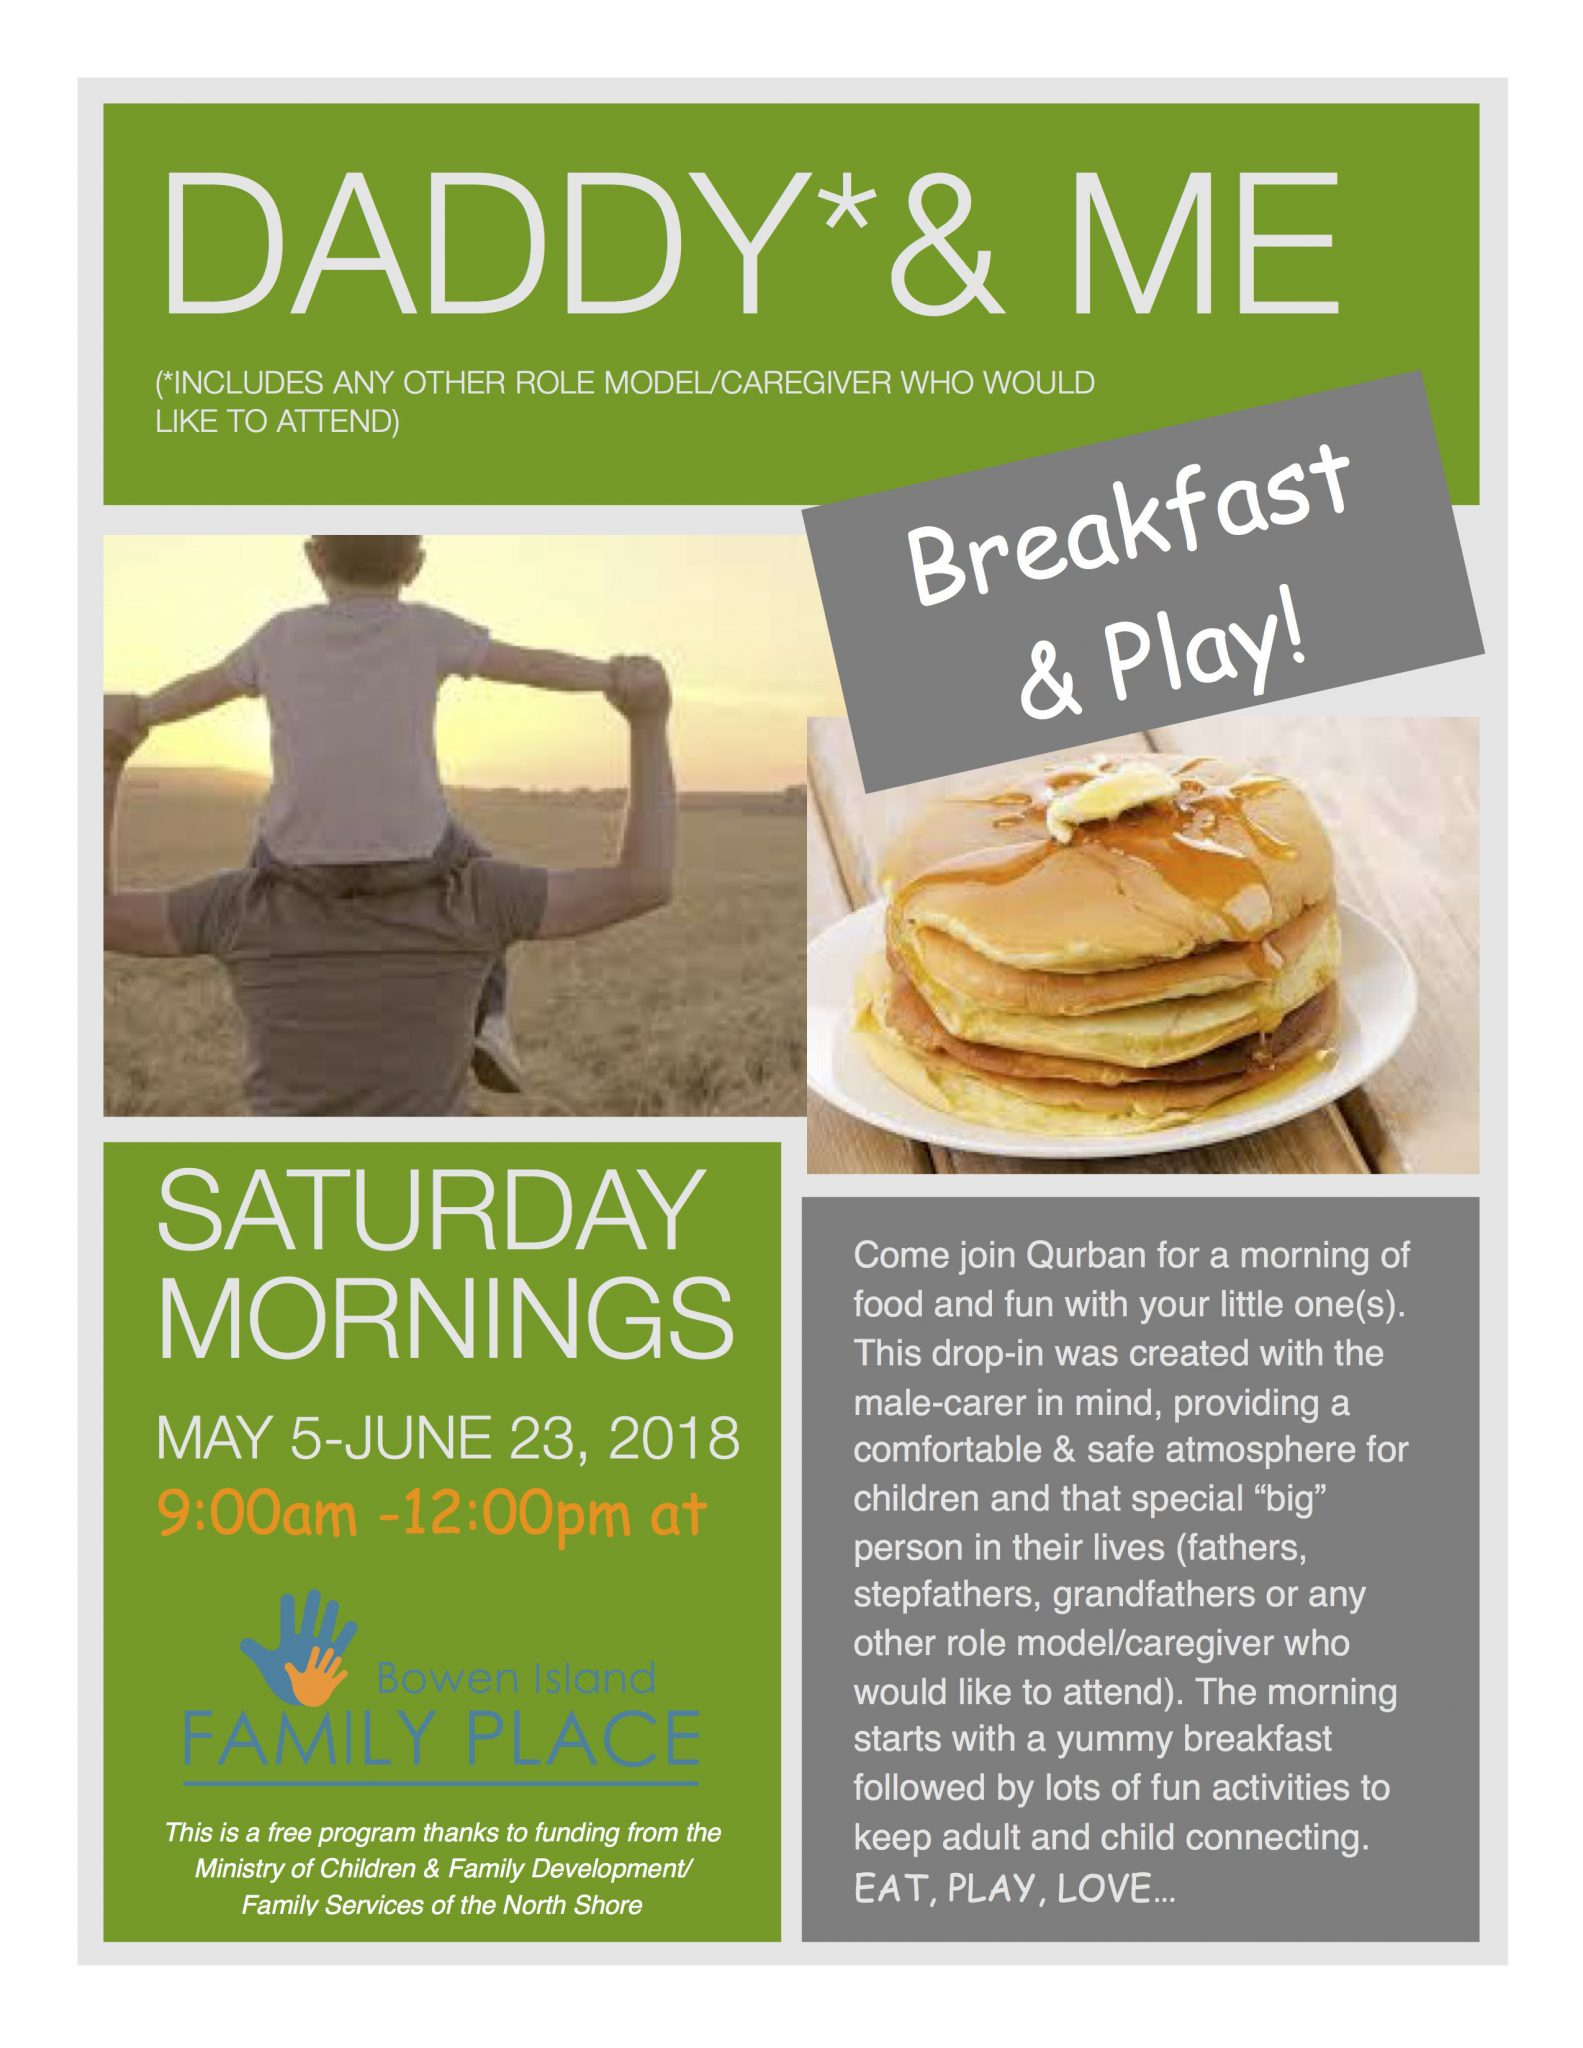 New Program Starting at Family Place on Saturdays